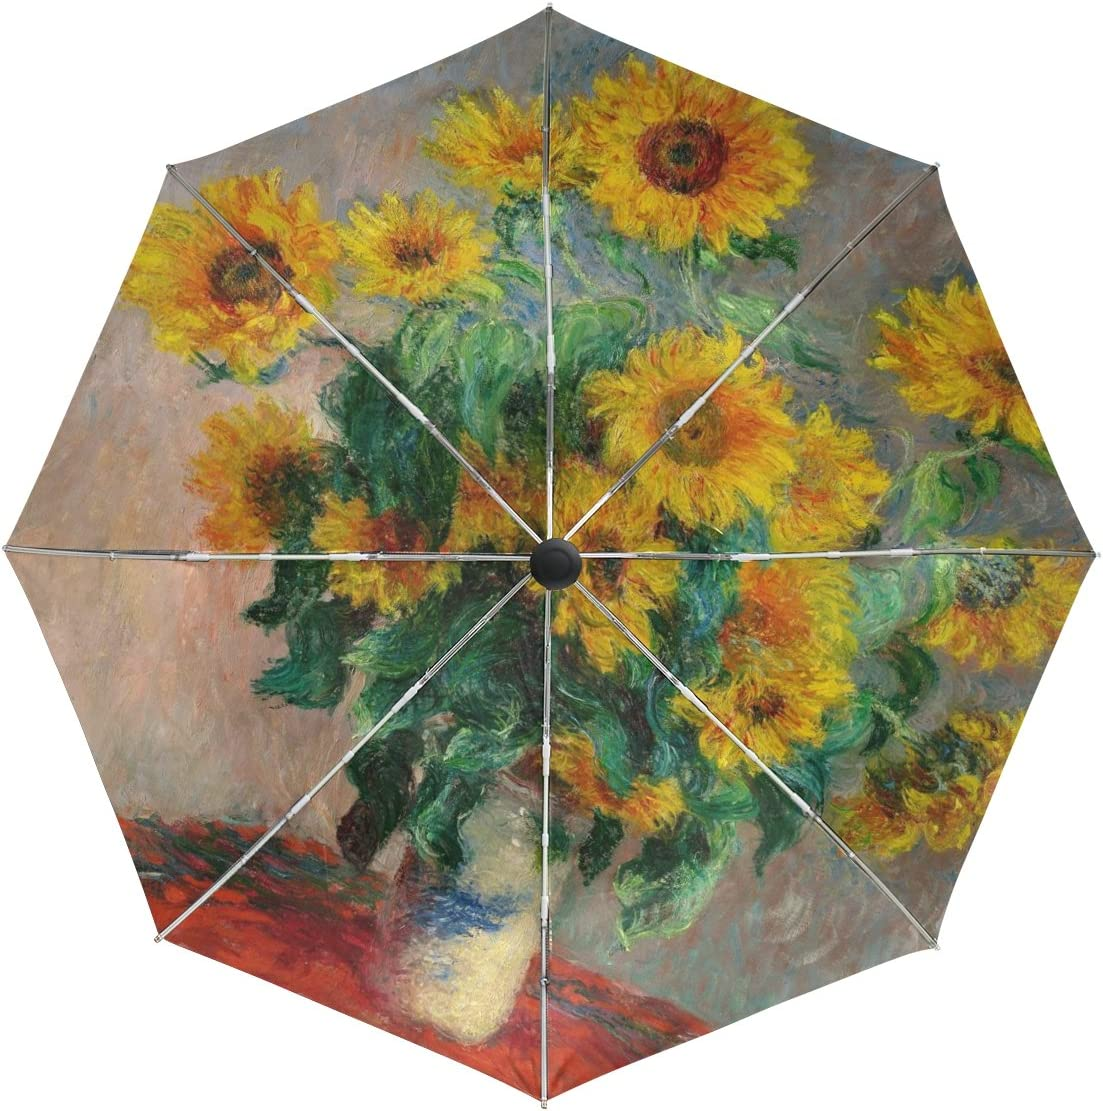 Free Shipping Cheap Bargain Gift baihuishop Monet Painting Windproof Umbrellas Auto 3 Open Close Max 90% OFF